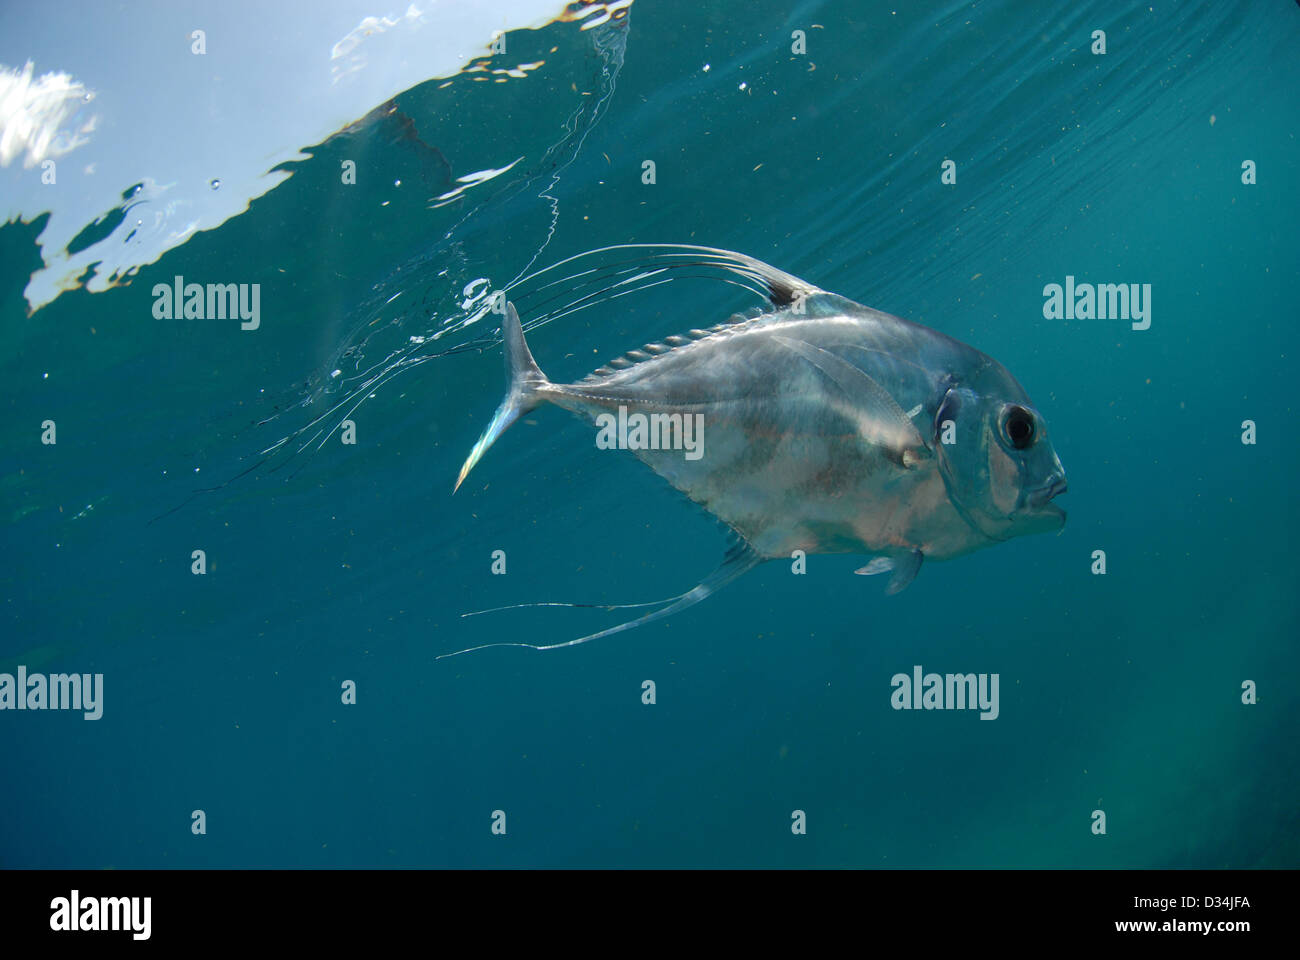 Beautiful African Pompano fish swimming in ocean - Stock Image